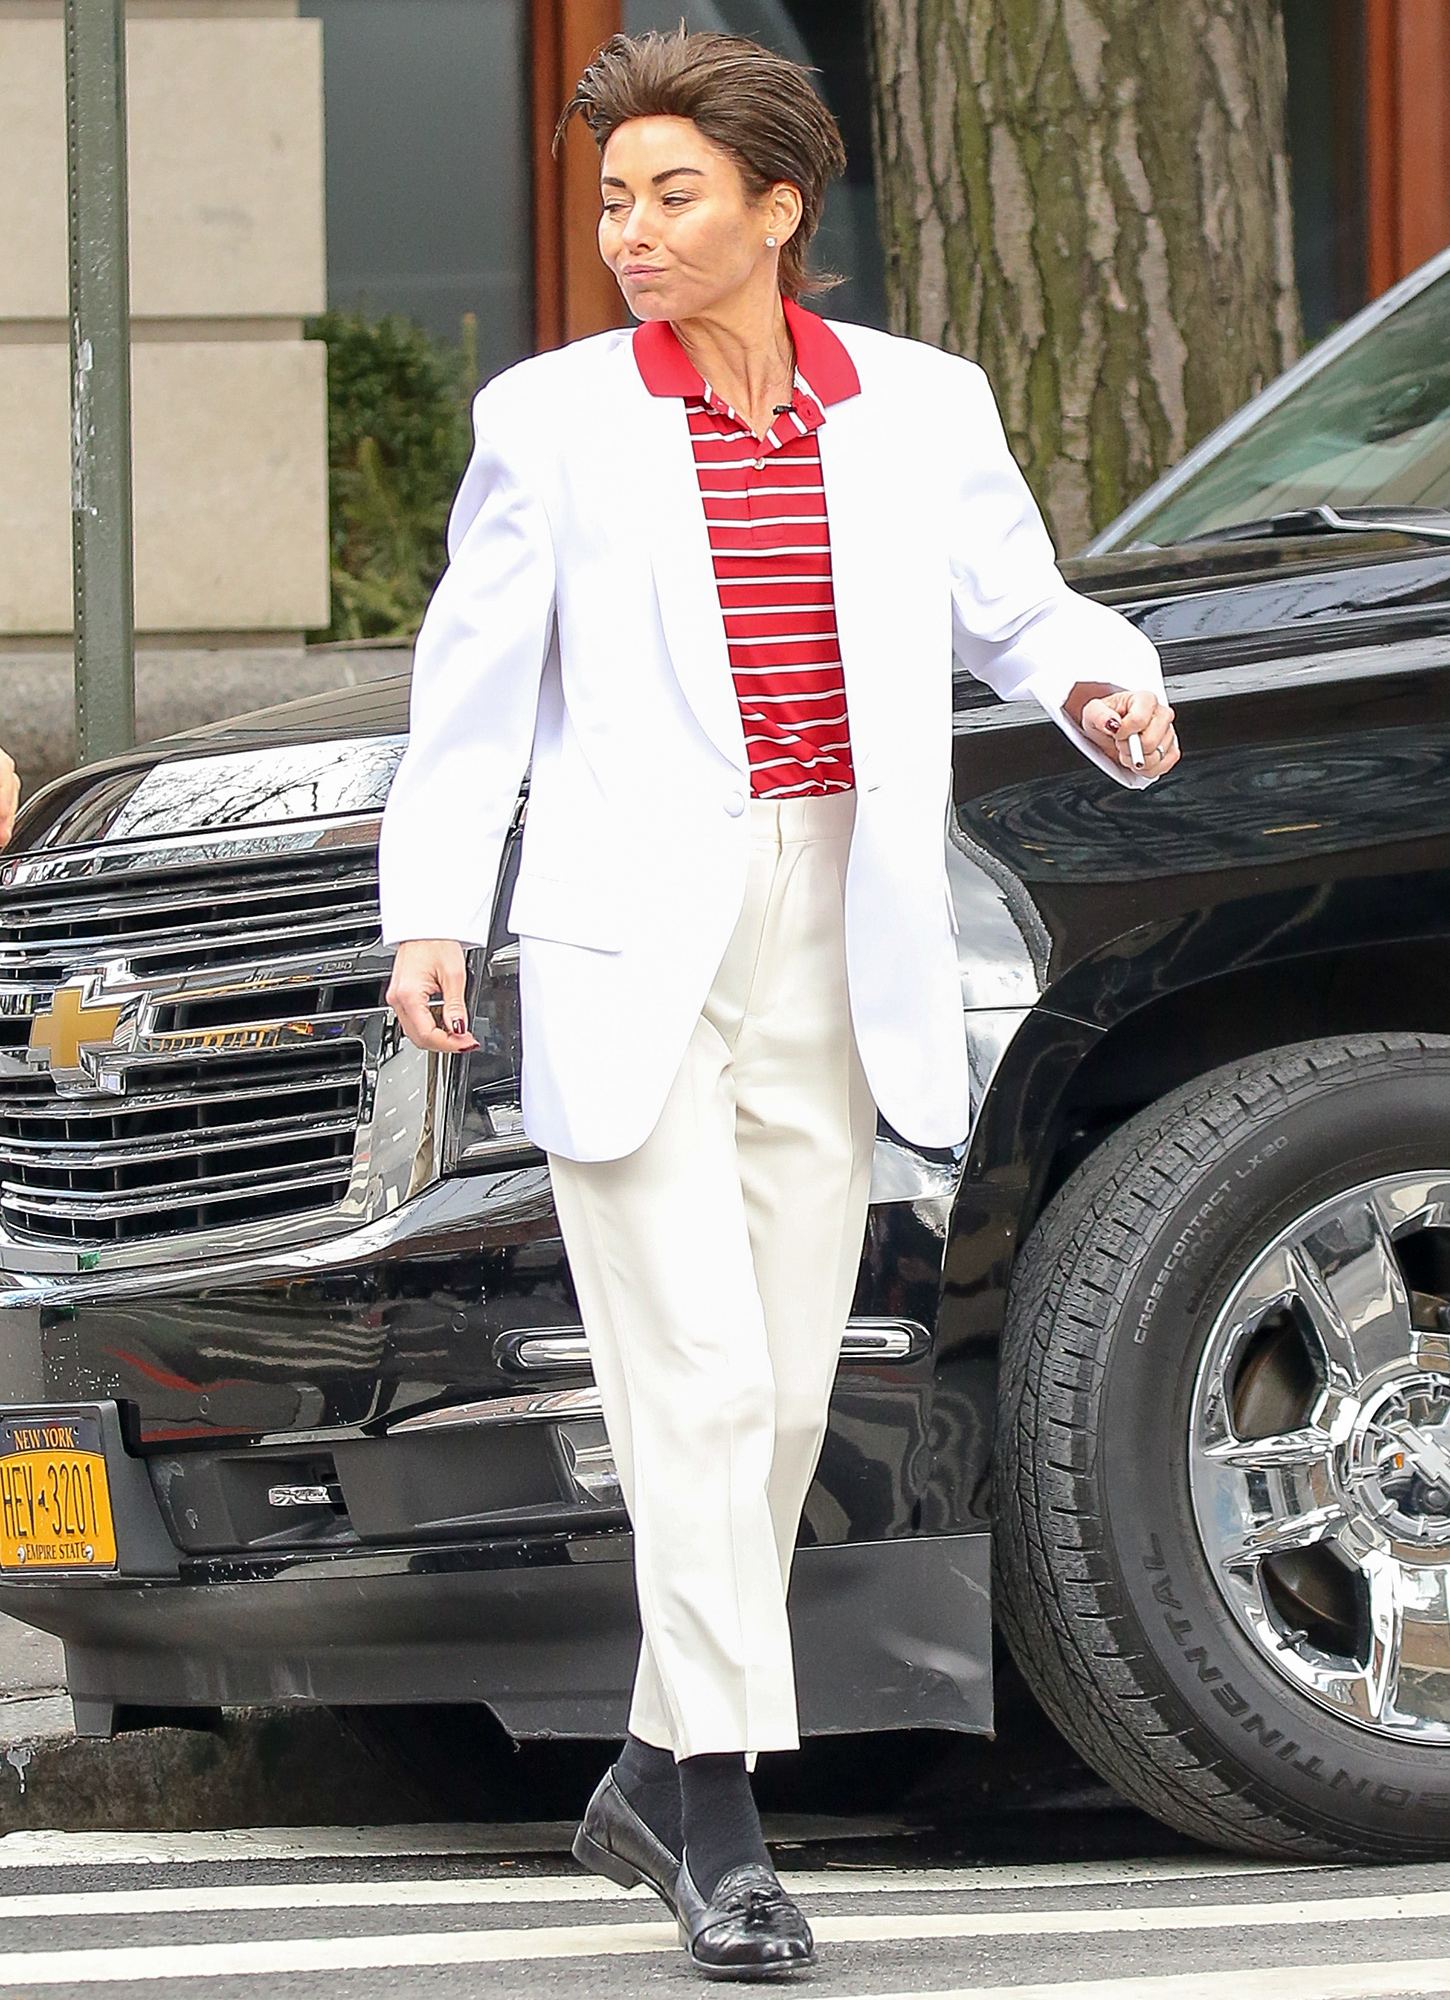 EXCLUSIVE: Kelly Ripa spotted wearing a white suit and a Man's WIG while filming scenes for the Live With Kelly show in New York City part 2